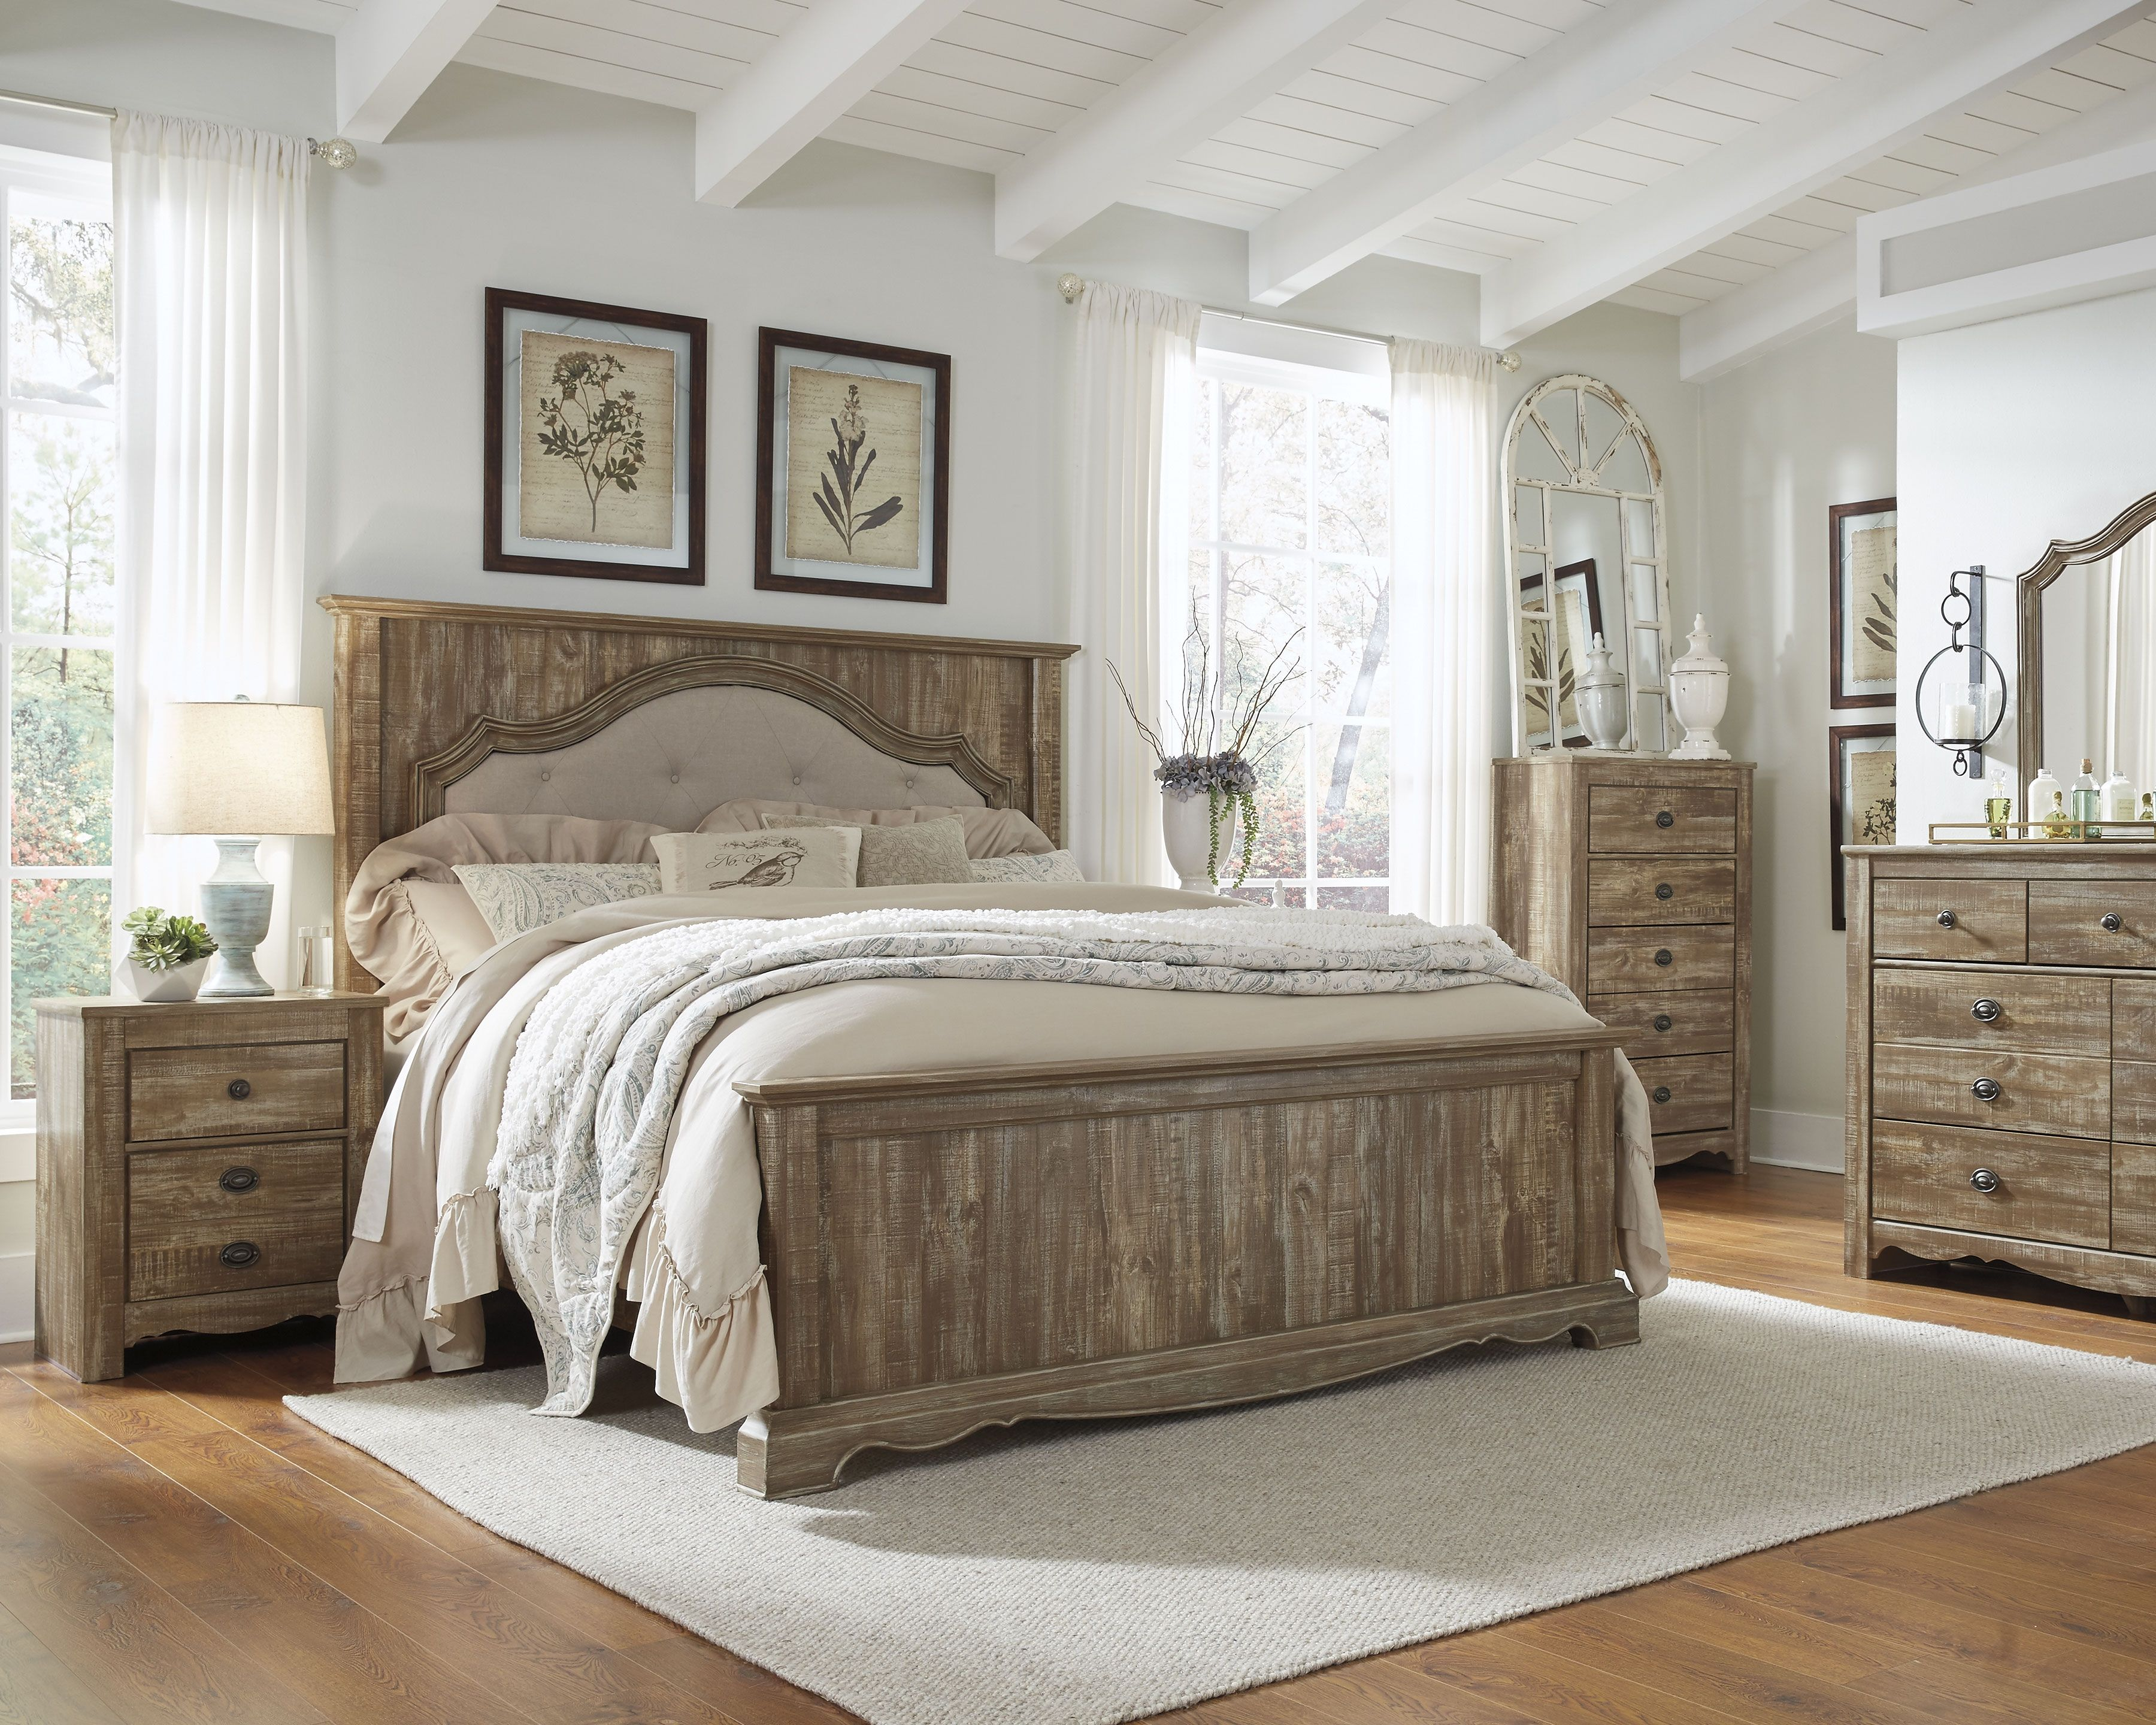 Master bedroom king bed Shellington King Bed with  Nightstands Caramel  Products